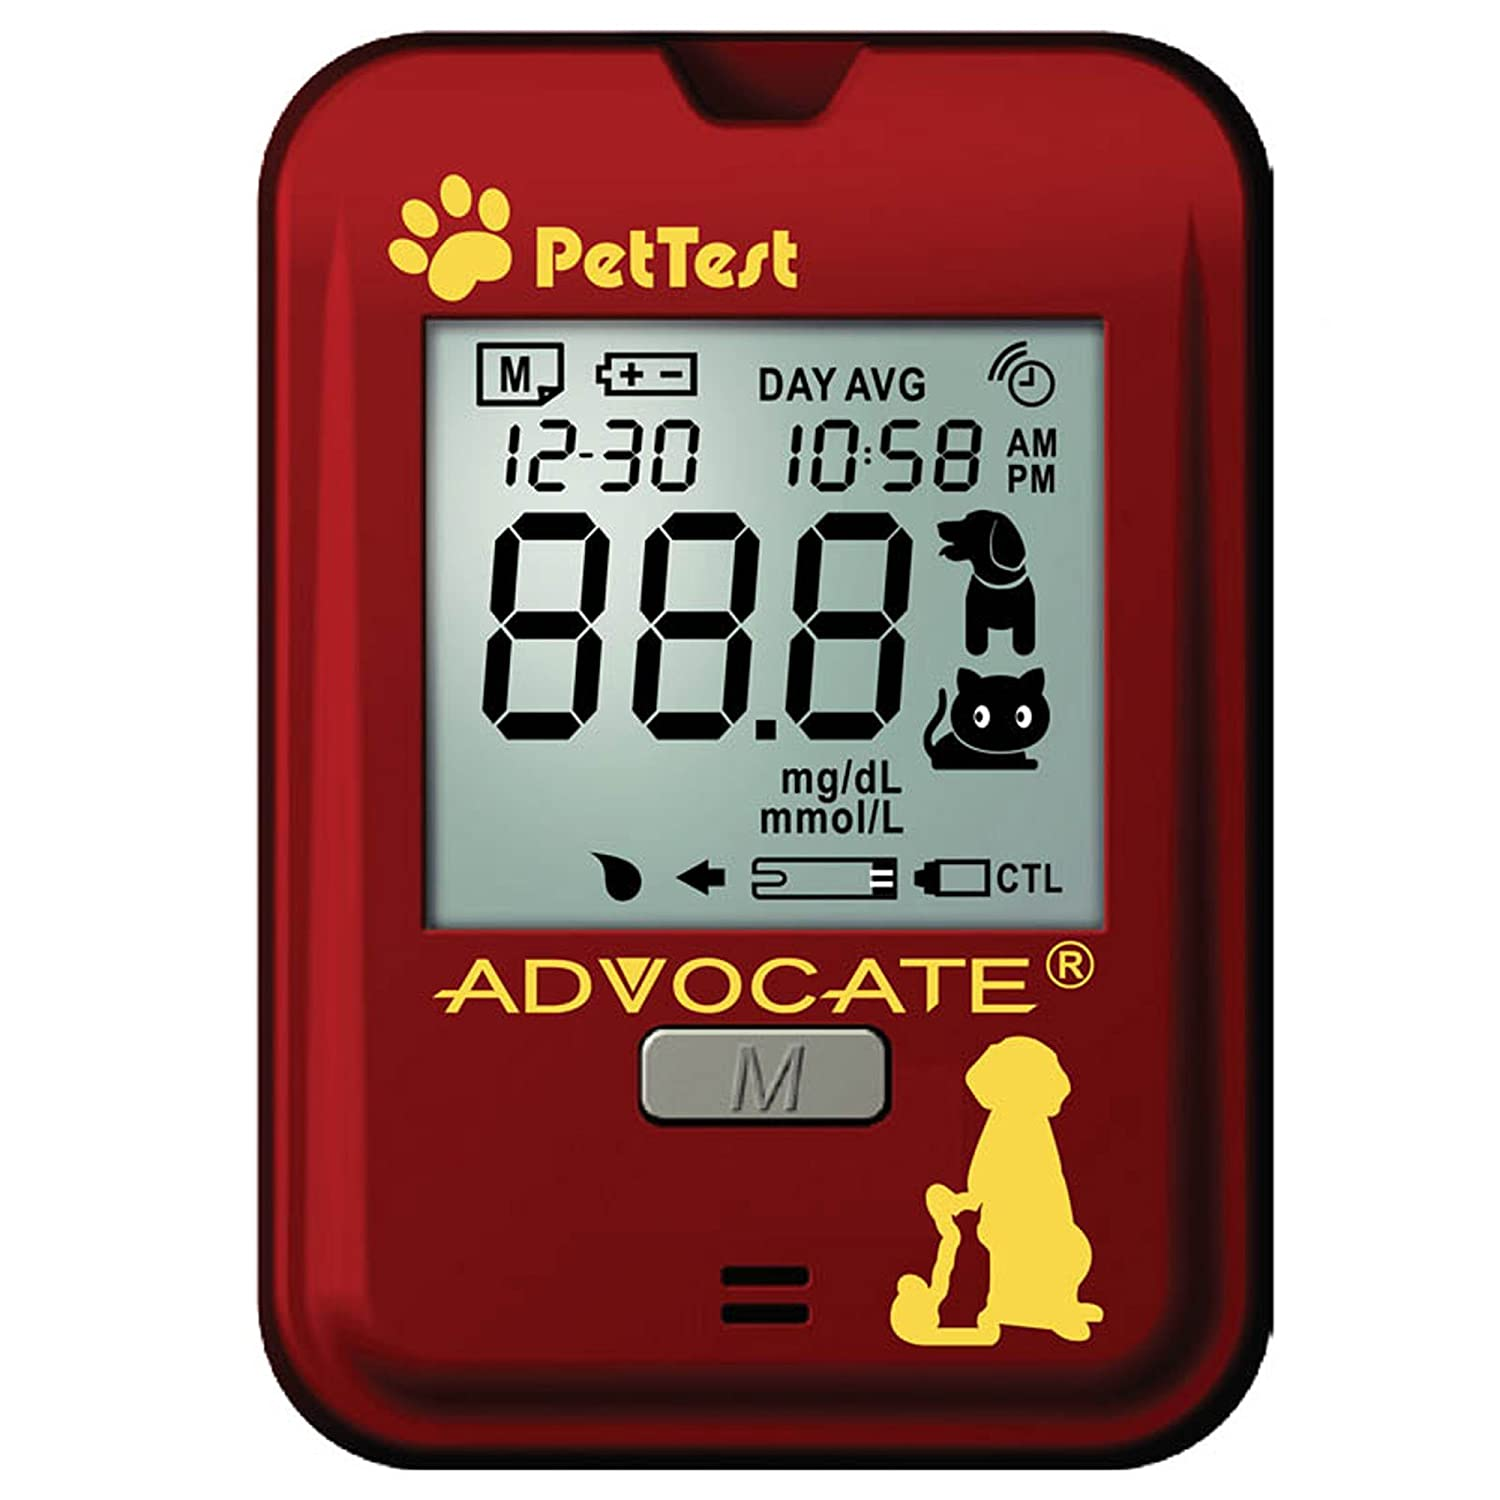 Advocate Pet Test Blood Glucose Monitoring System for Dogs Cats PT-100